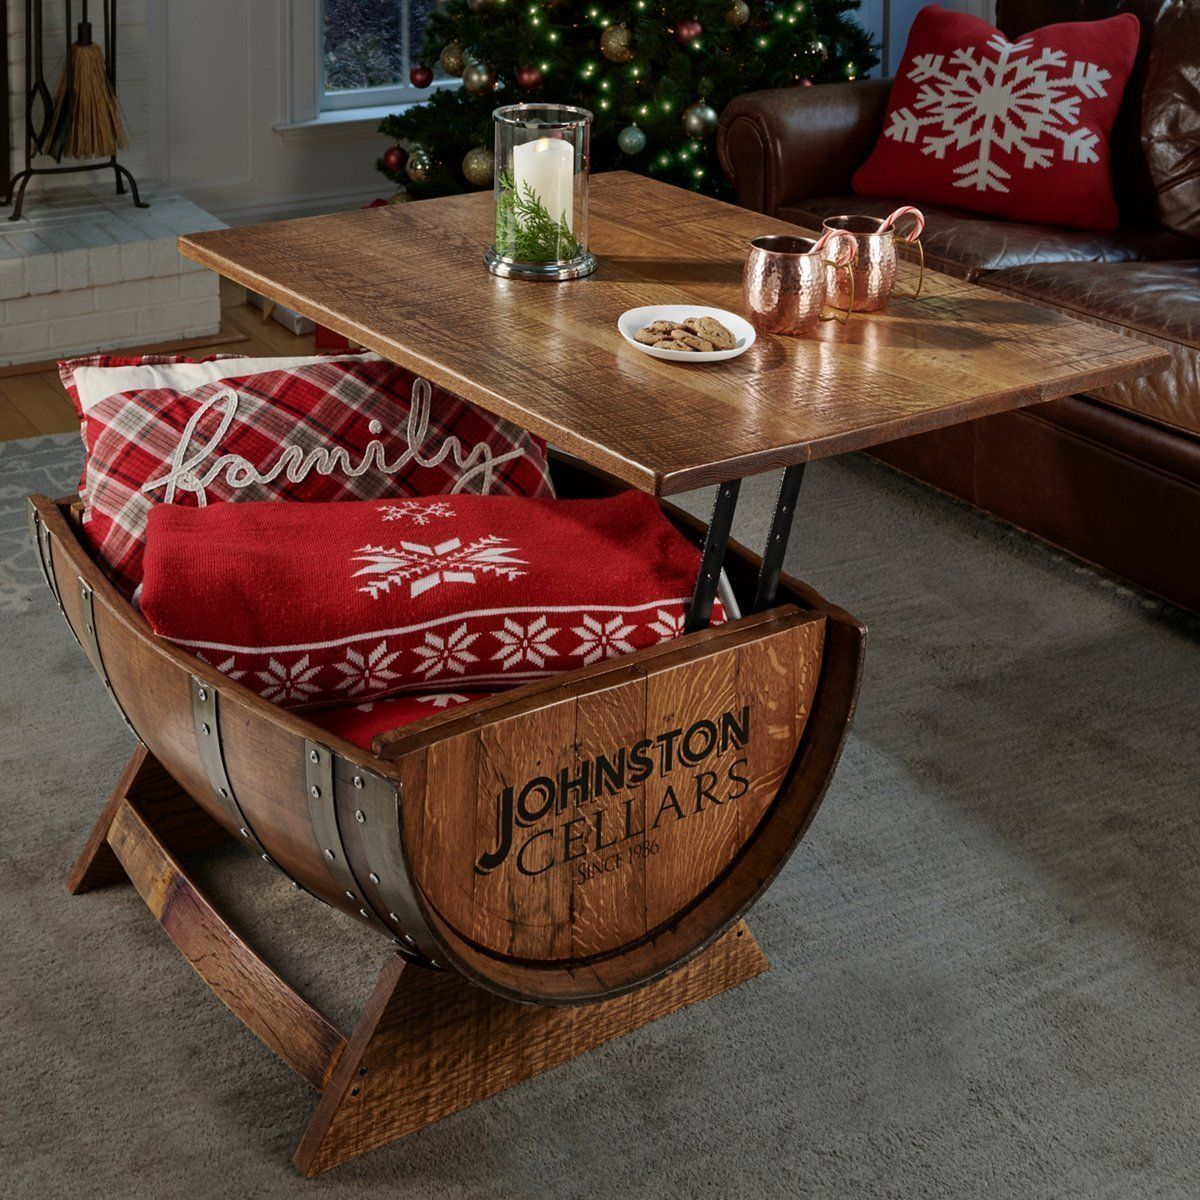 Personalized Reclaimed Wine Barrel Coffee Table With Unique Lift Top Chenlinwood In 2020 Wine Barrel Coffee Table Barrel Coffee Table Barrel Coffee